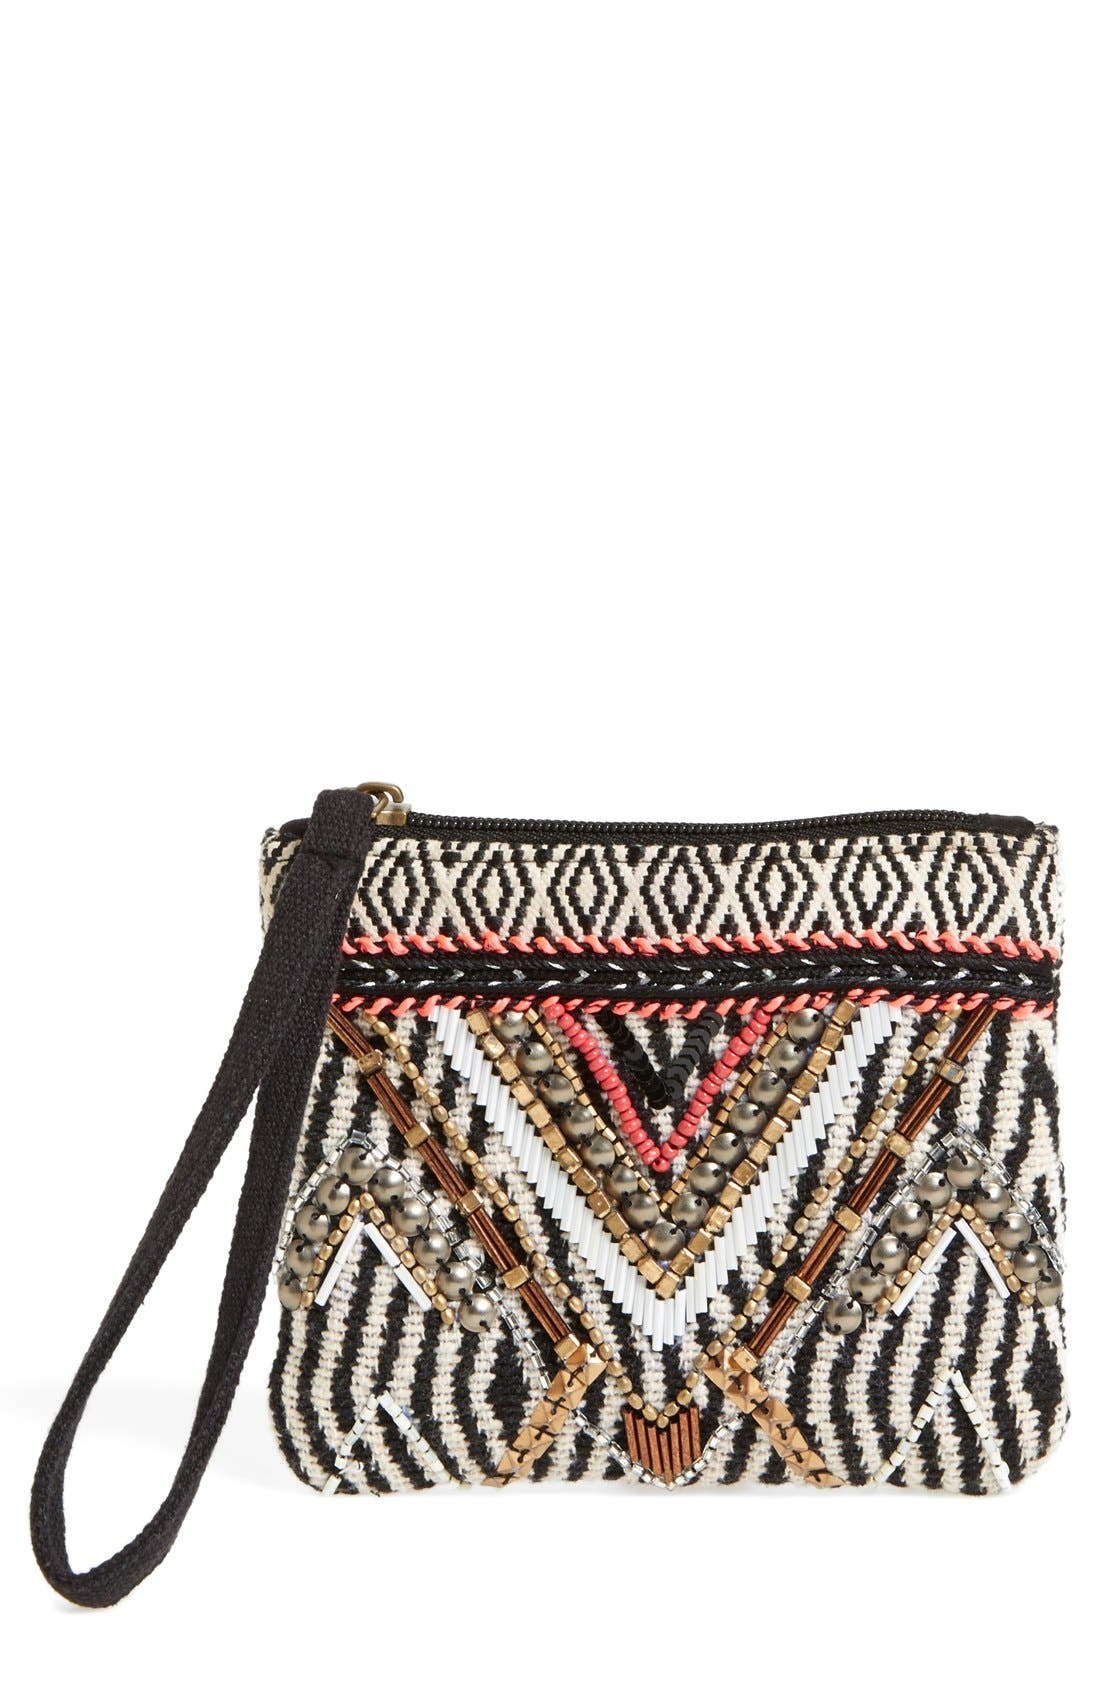 Main Image - Street Level 'Ratna' Beaded Wristlet